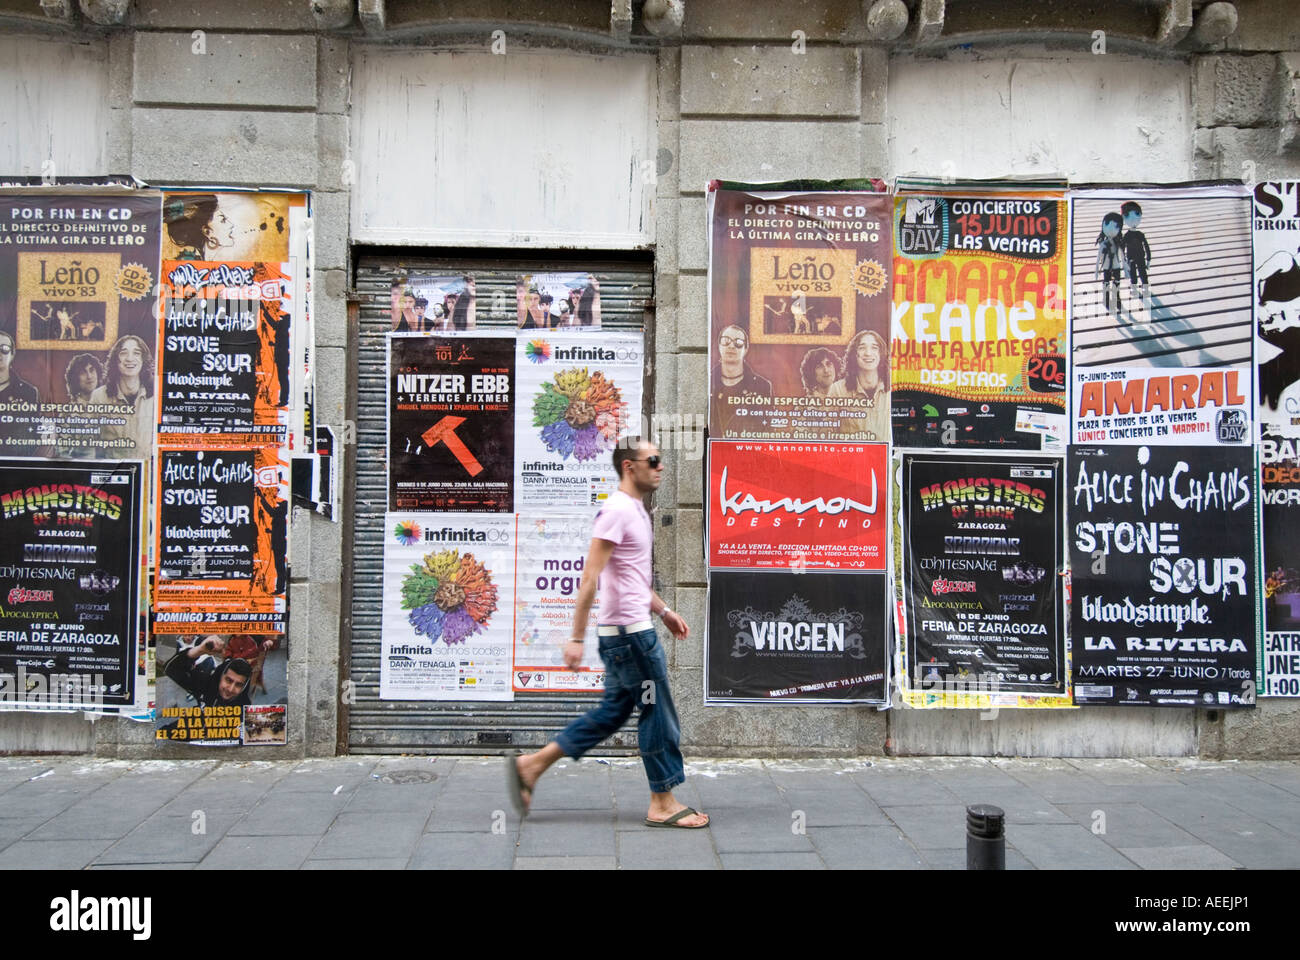 Man walking past fly posters advertising rock bands in Chueca area, Madrid Spain - Stock Image